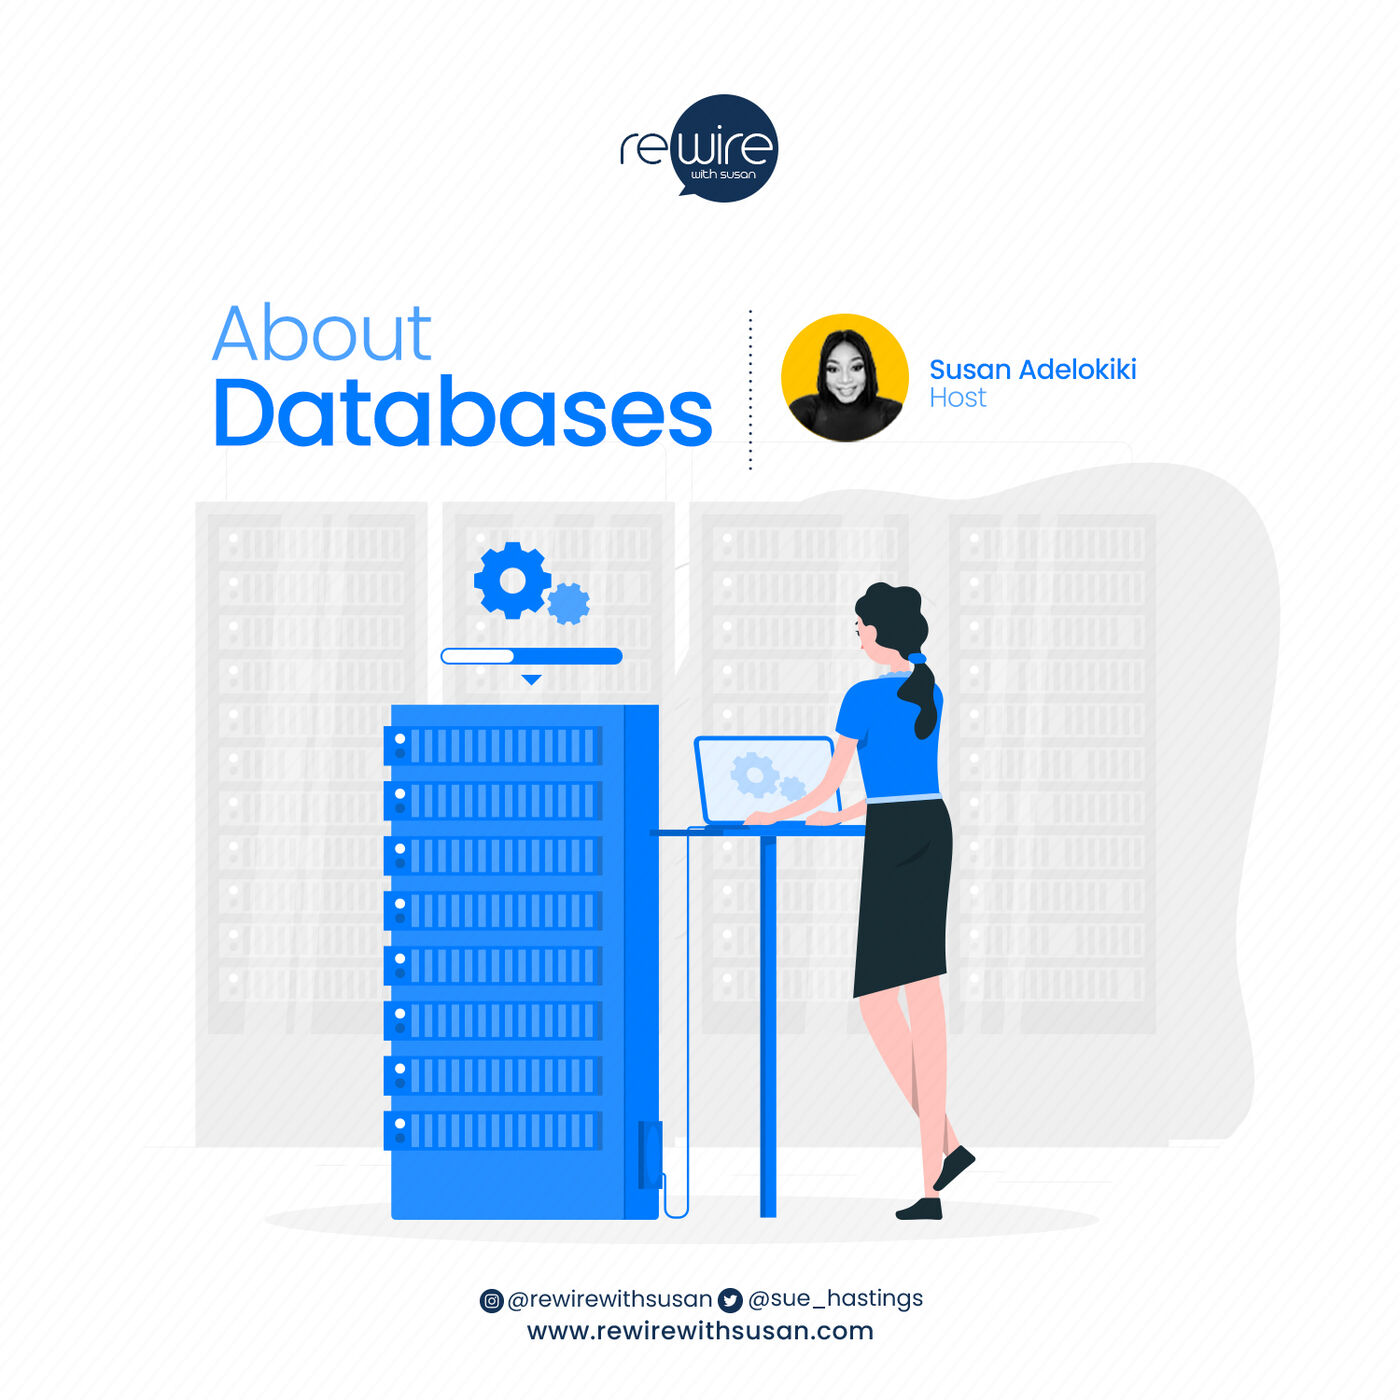 About Databases